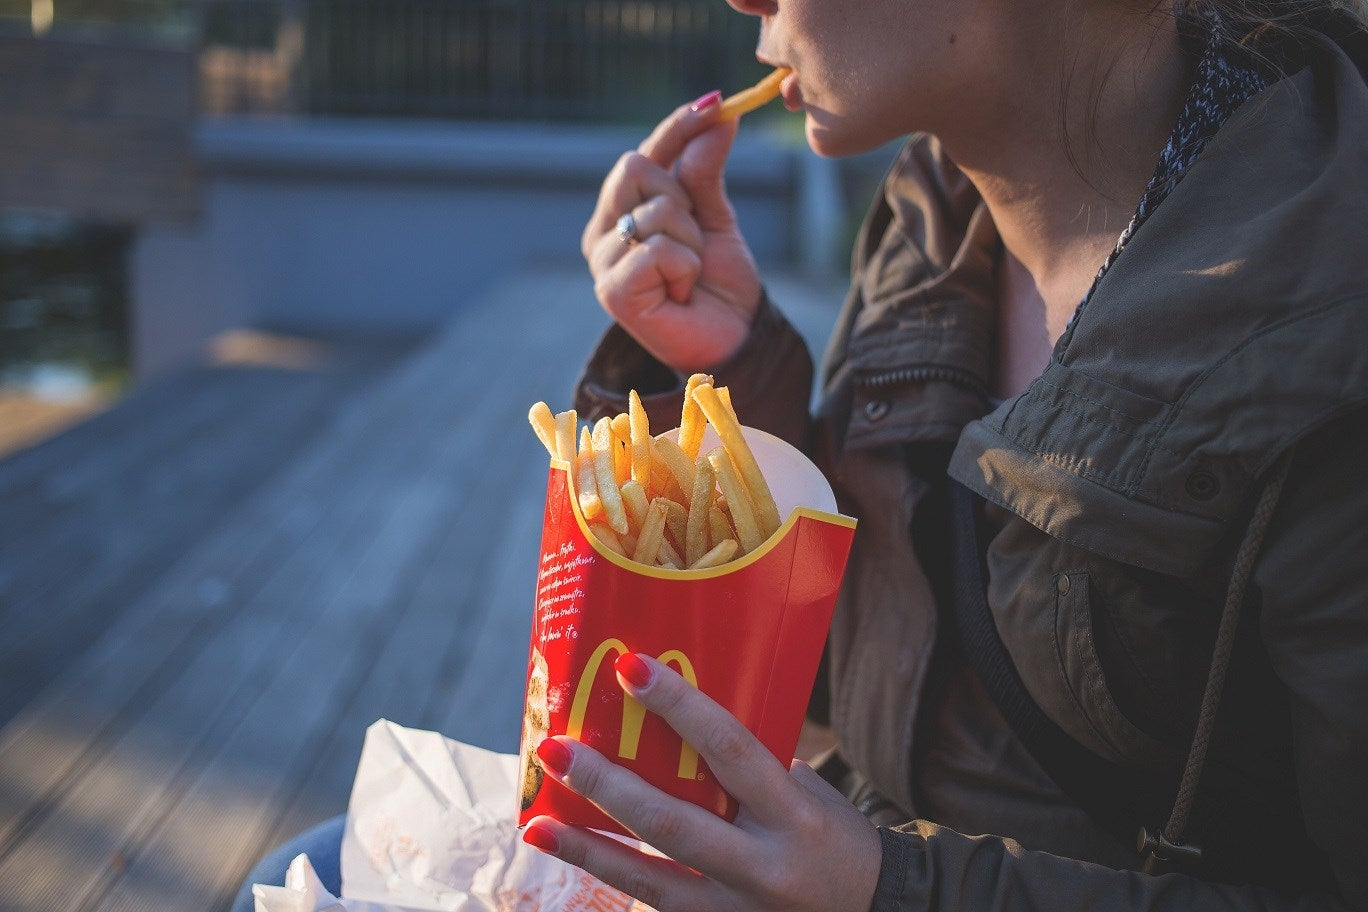 How To Get Free Food From Australian Fast Food Restaurants